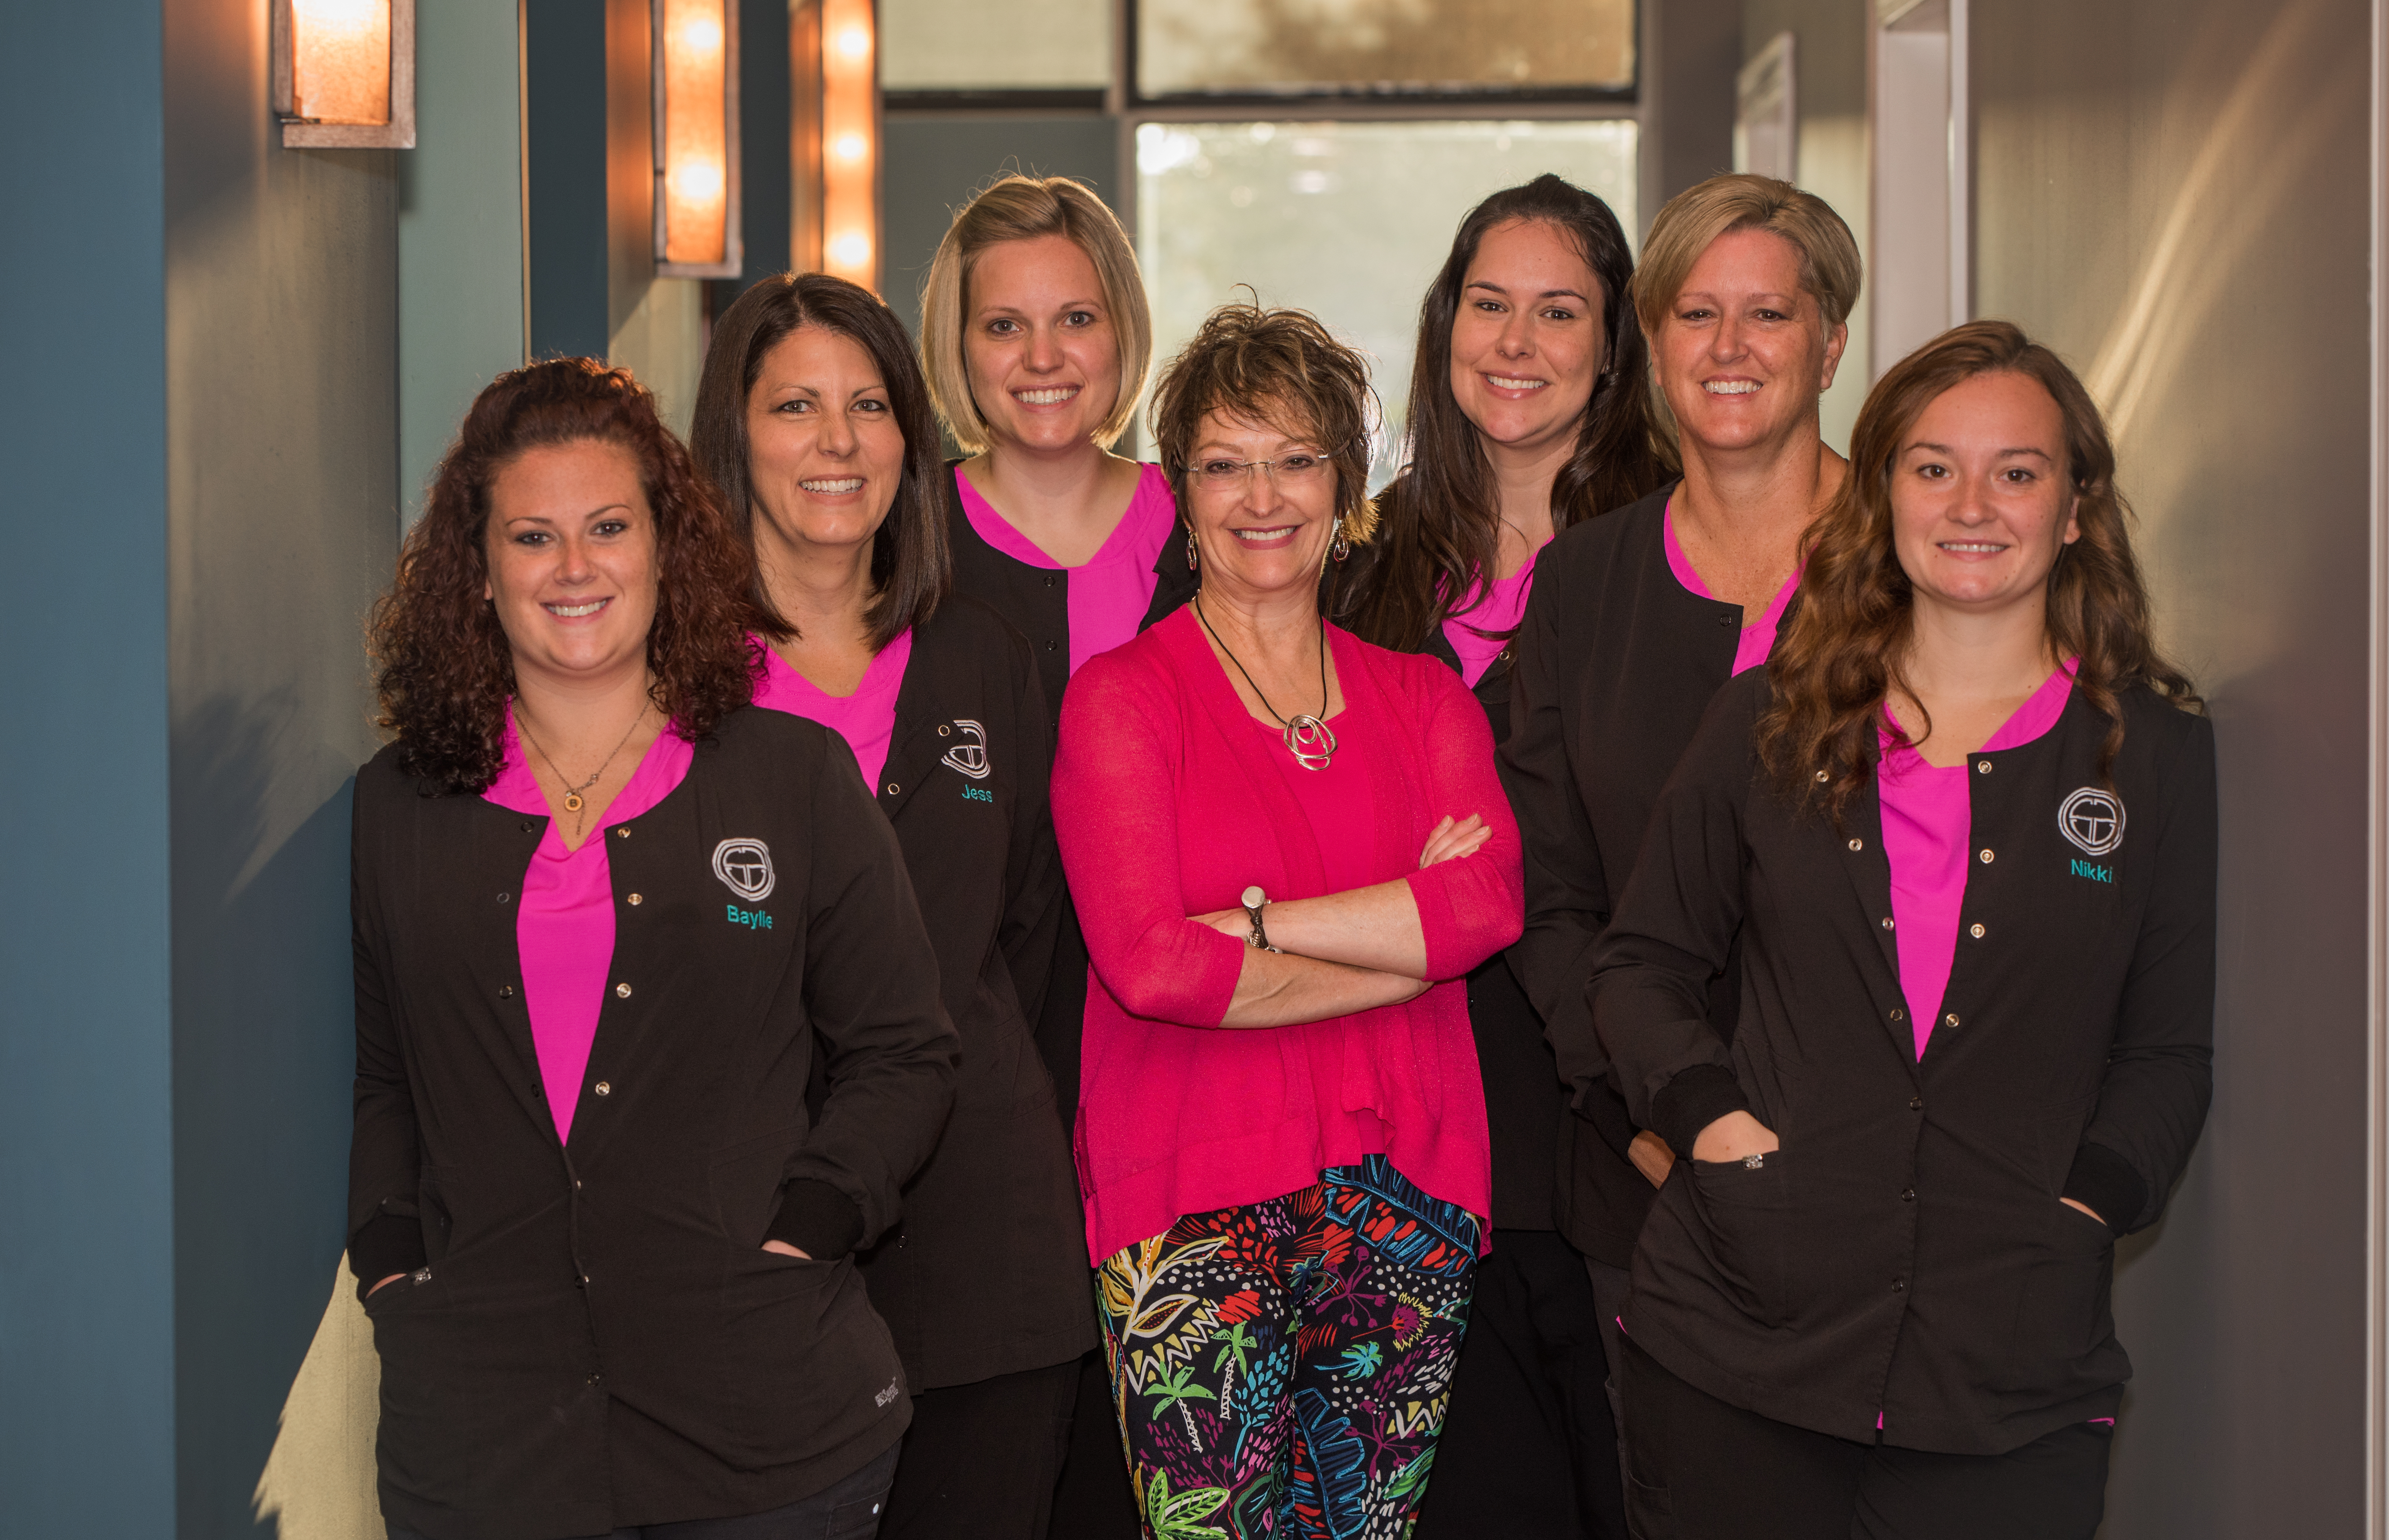 Susan E. Snyder, D.D.S., PC reviews   Cosmetic Dentists at 750 Park East Blvd - Lafayette IN